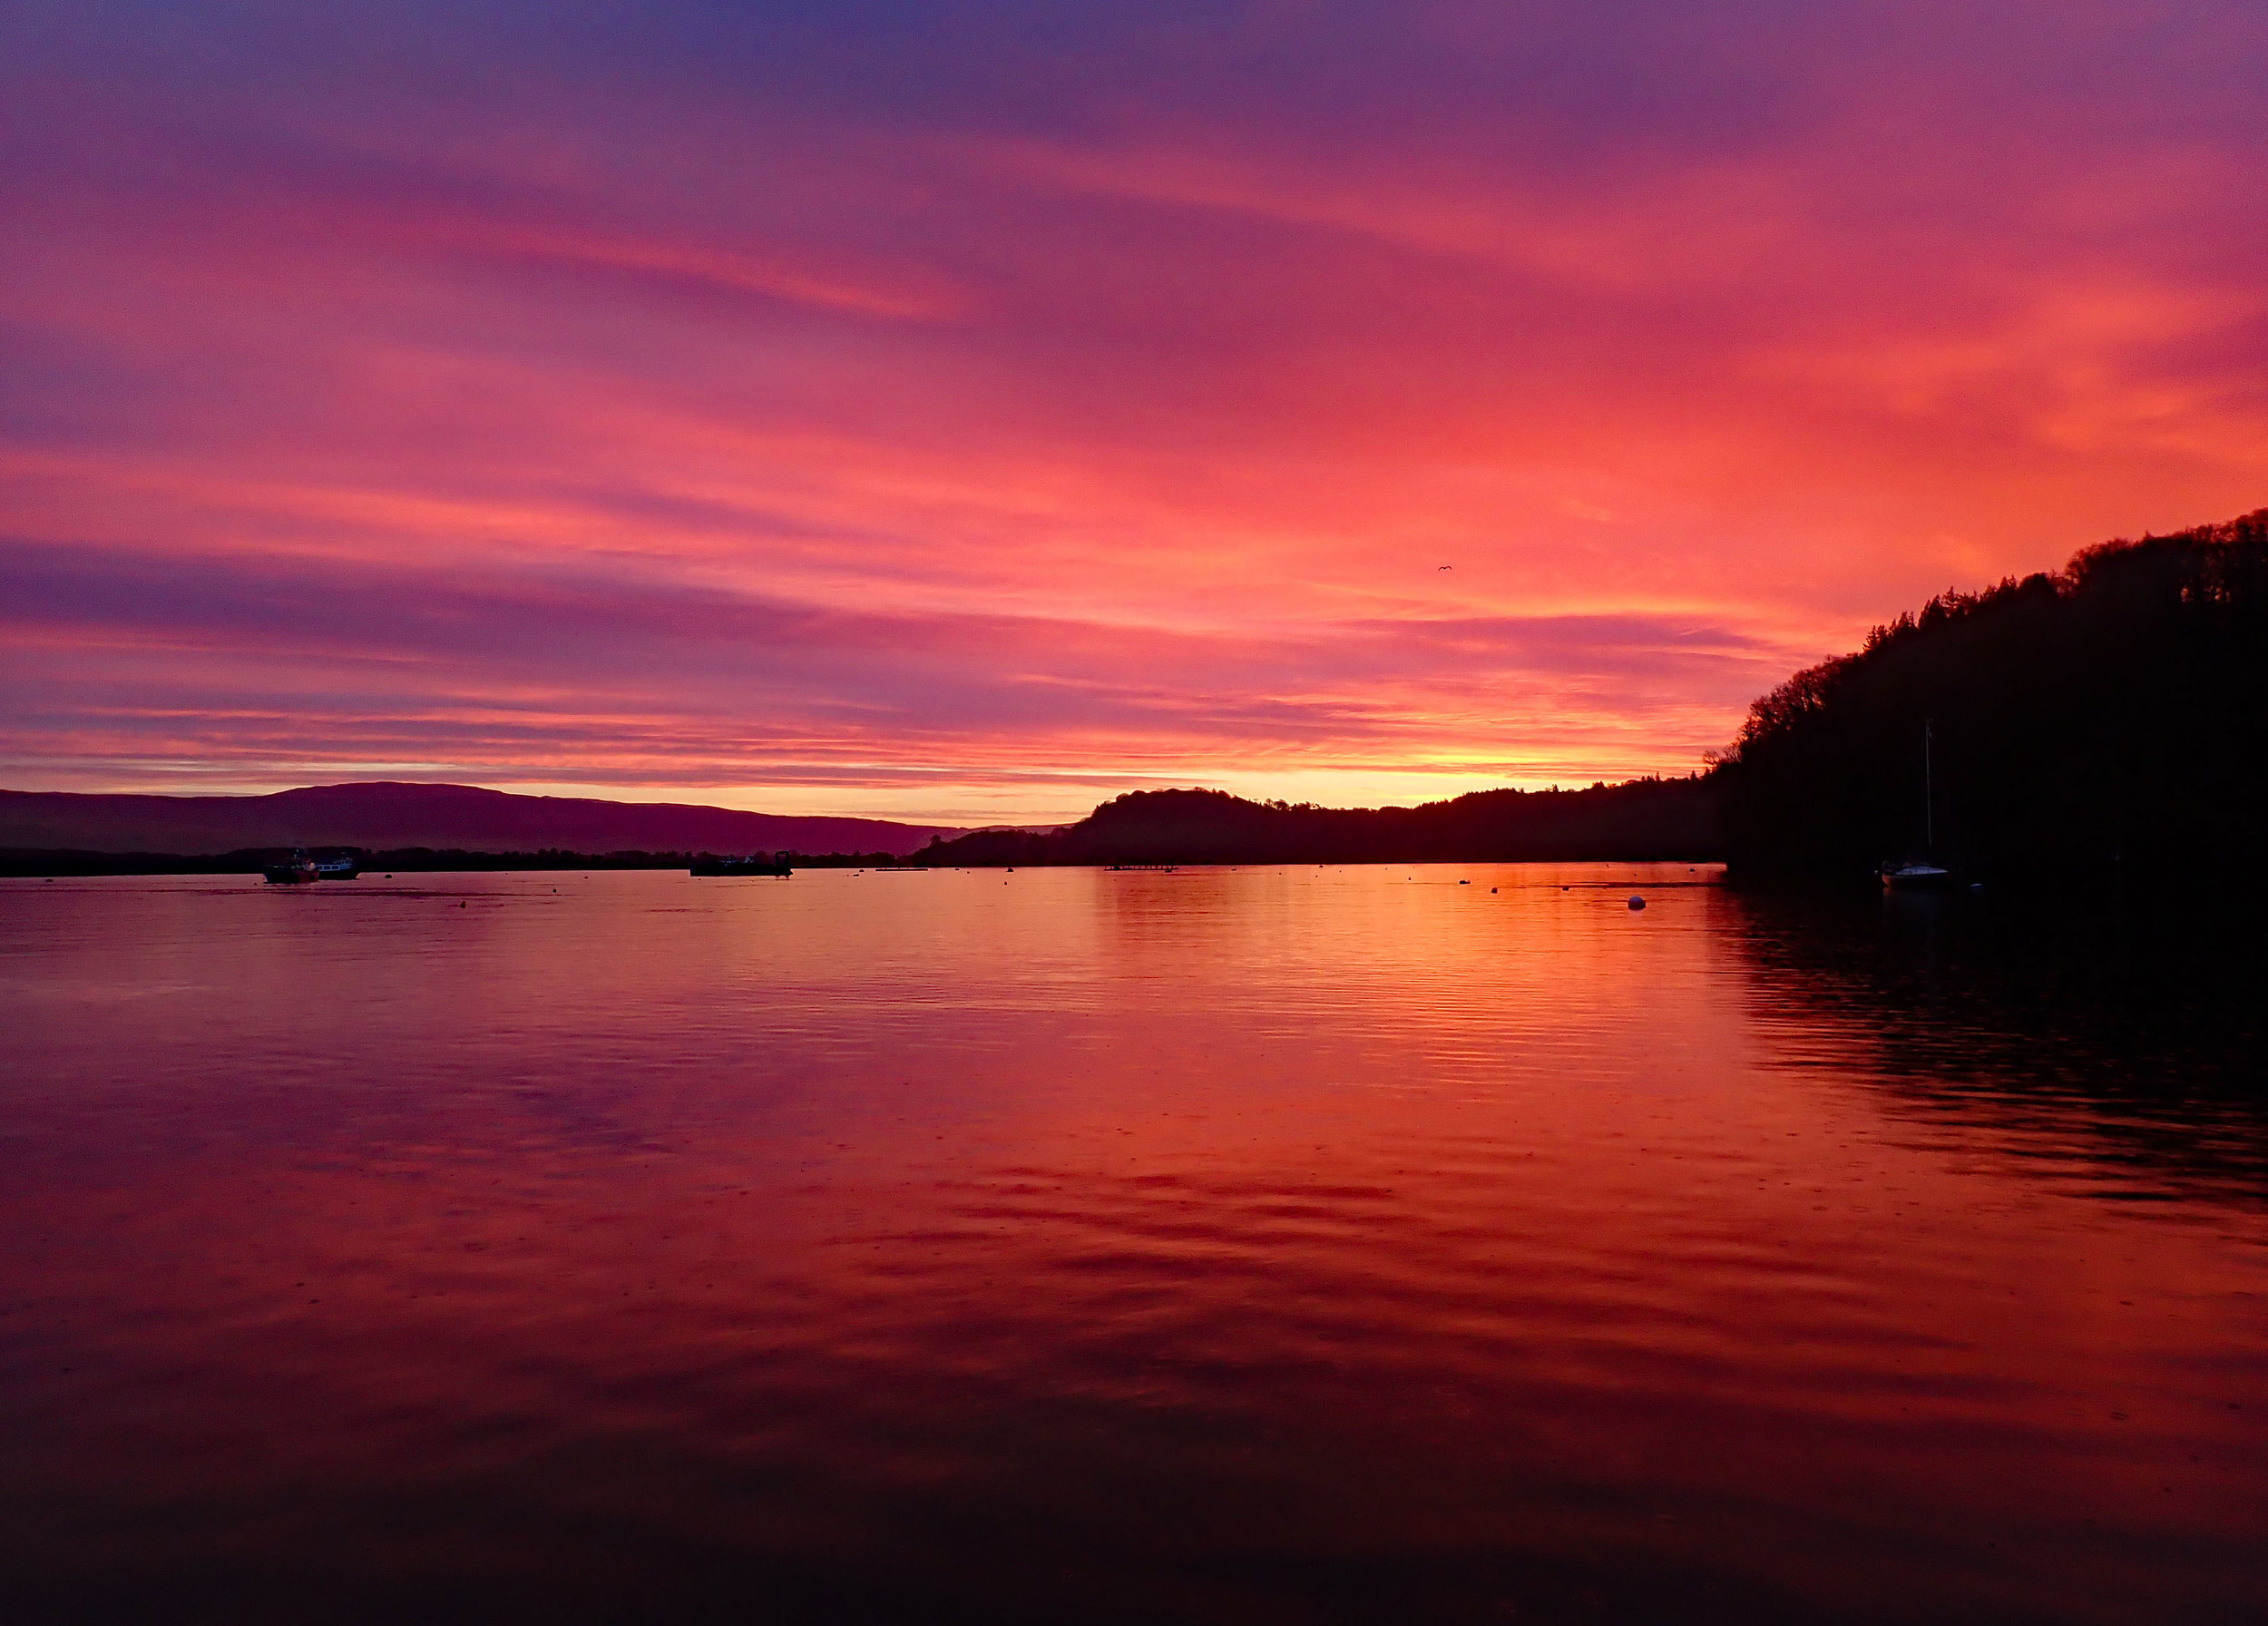 Tobermory Sunrise, January 2019